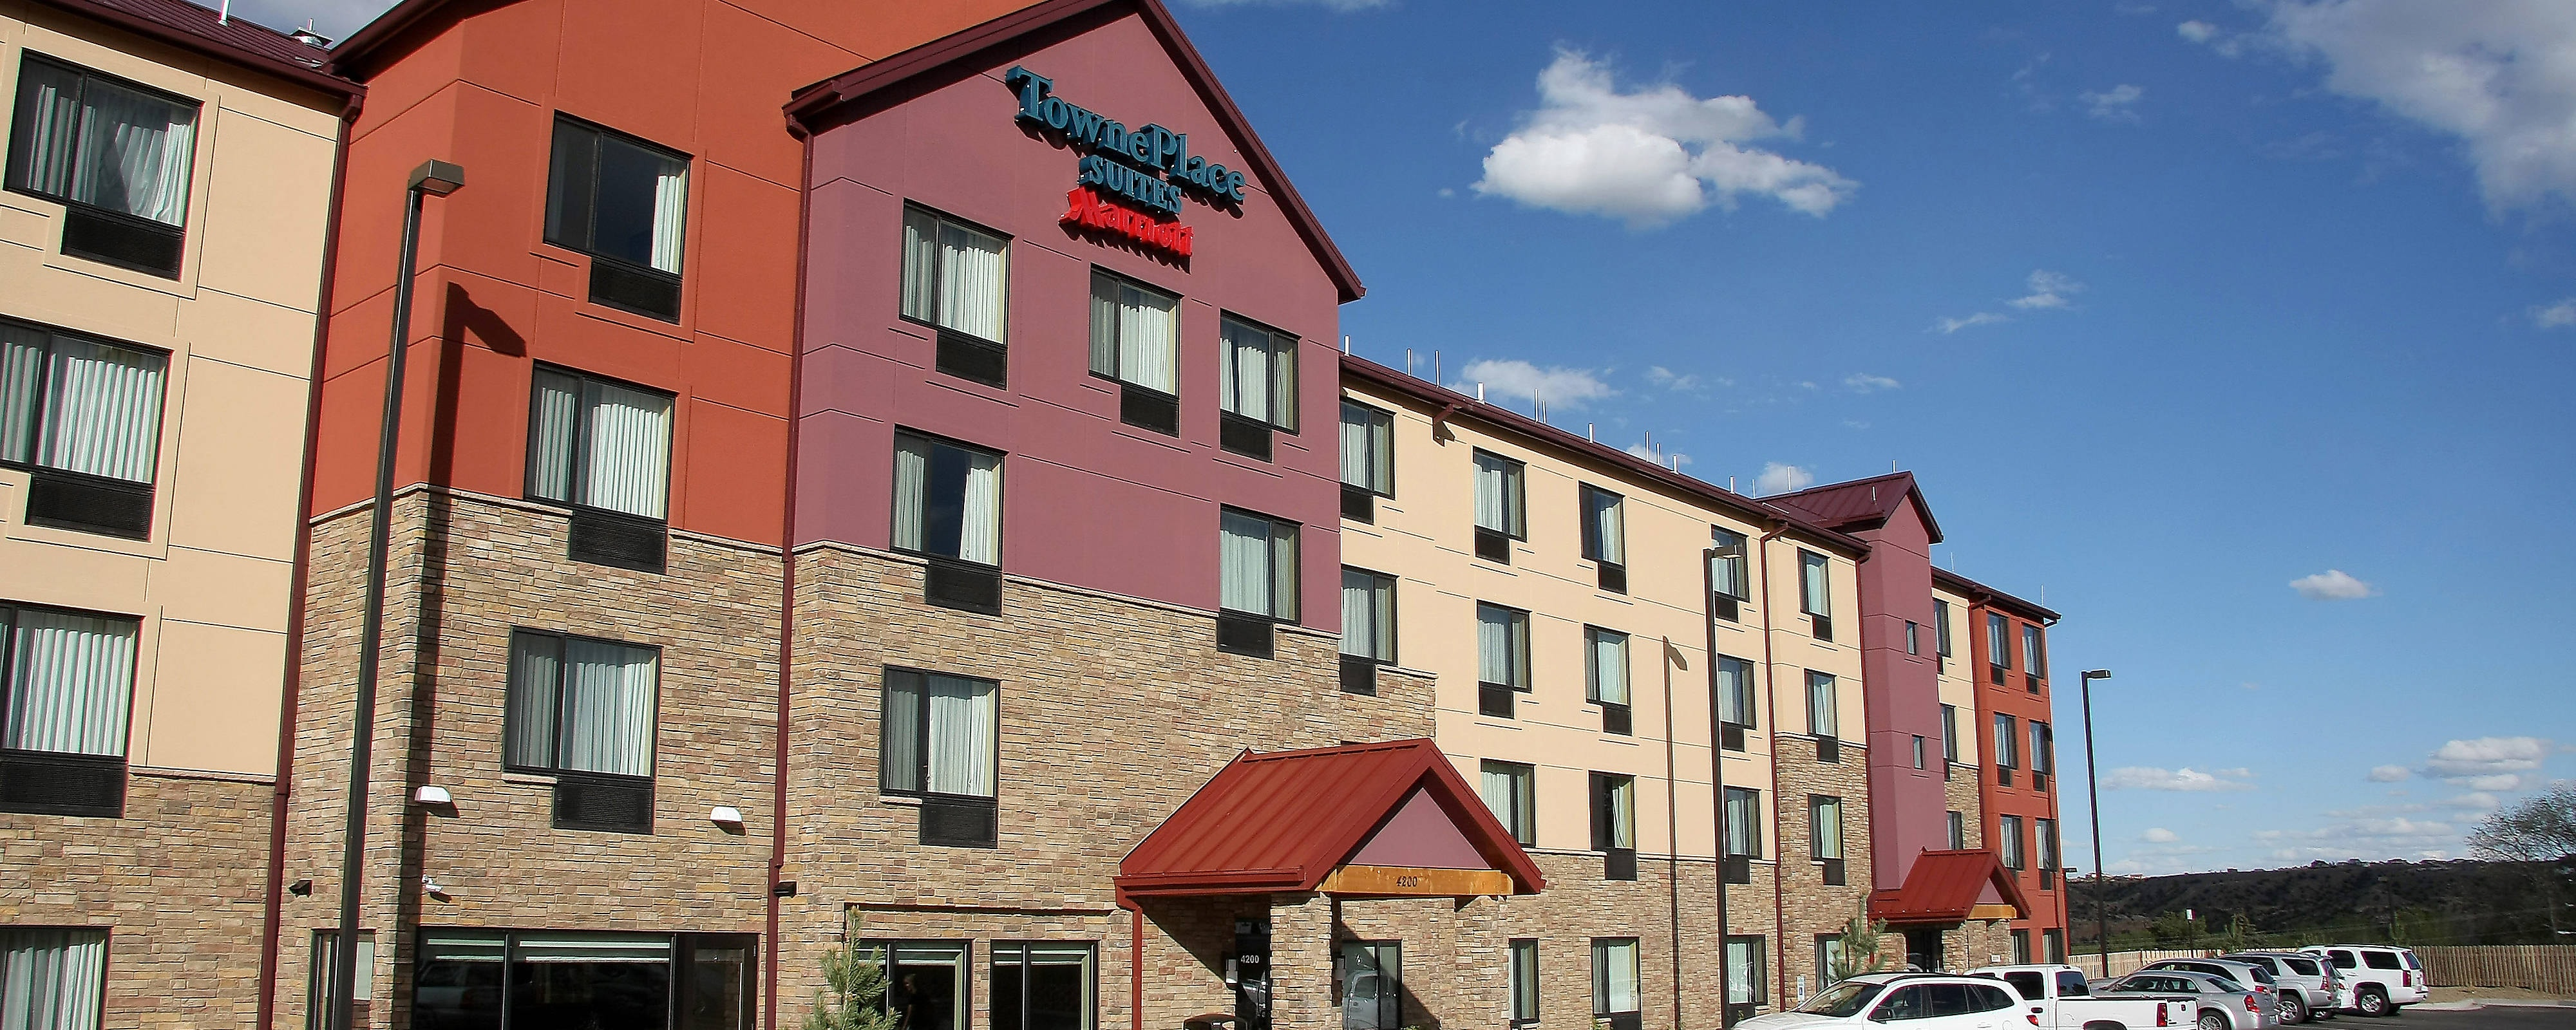 Hotel de suites TownePlace de Farmington